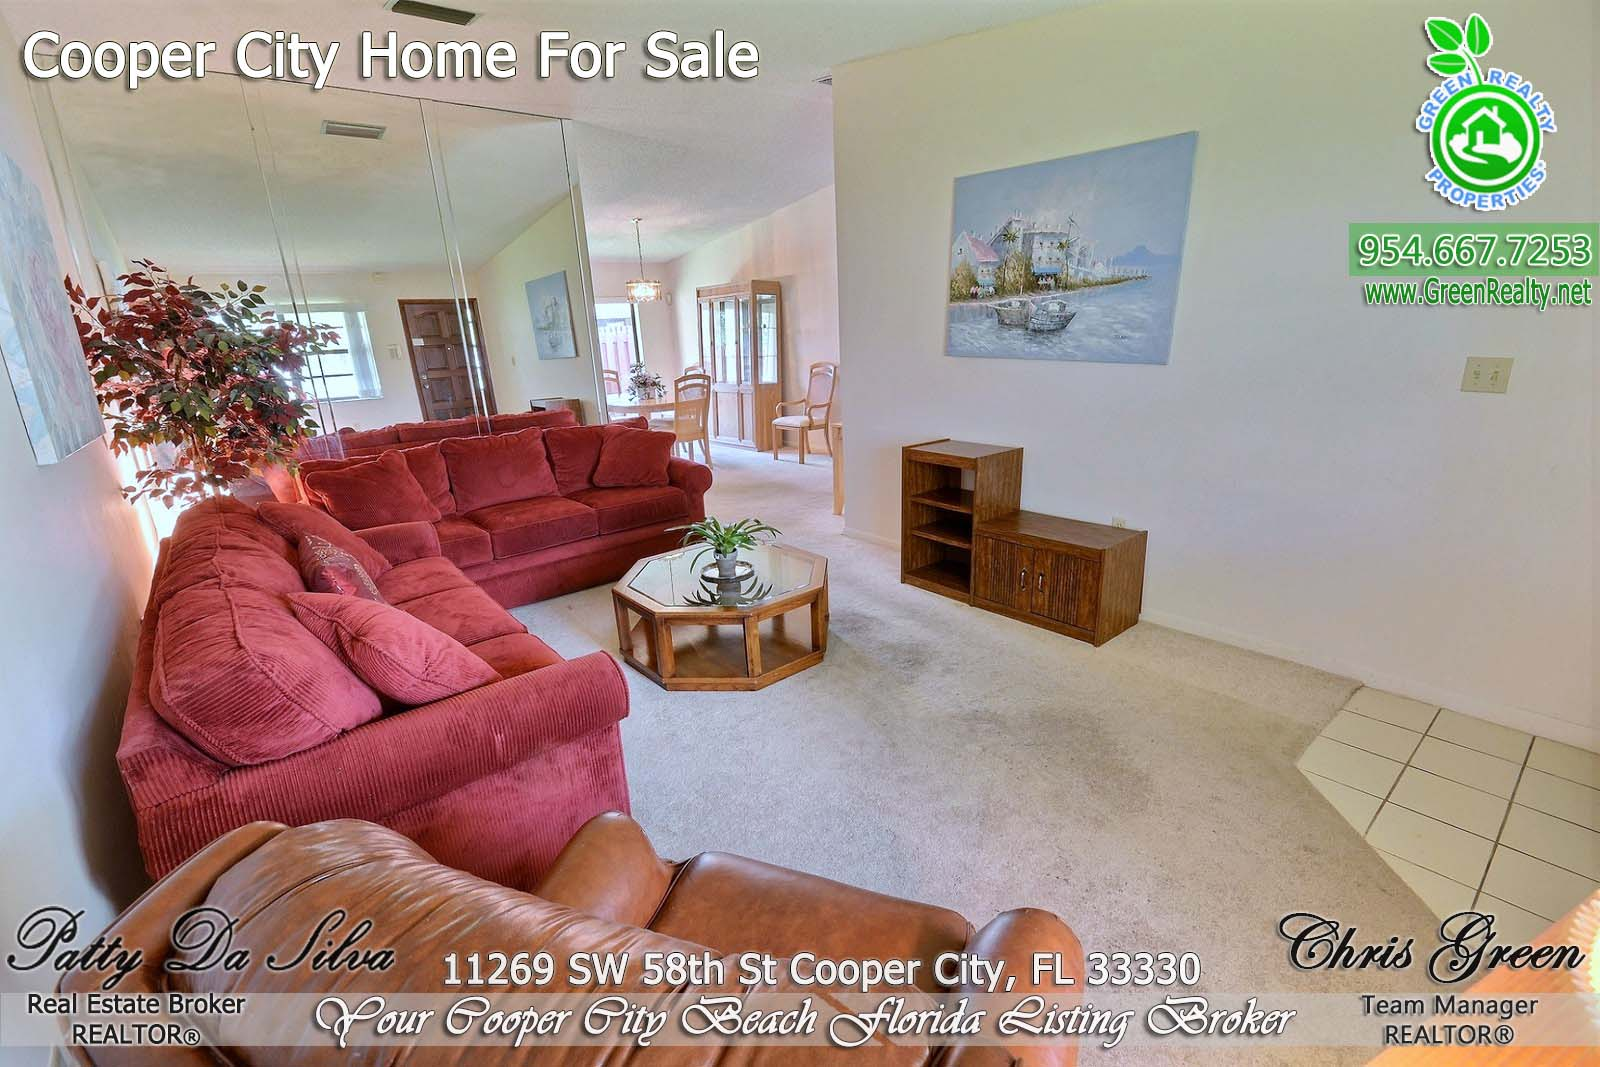 6 Cooper City Real Estate - Villas (11)